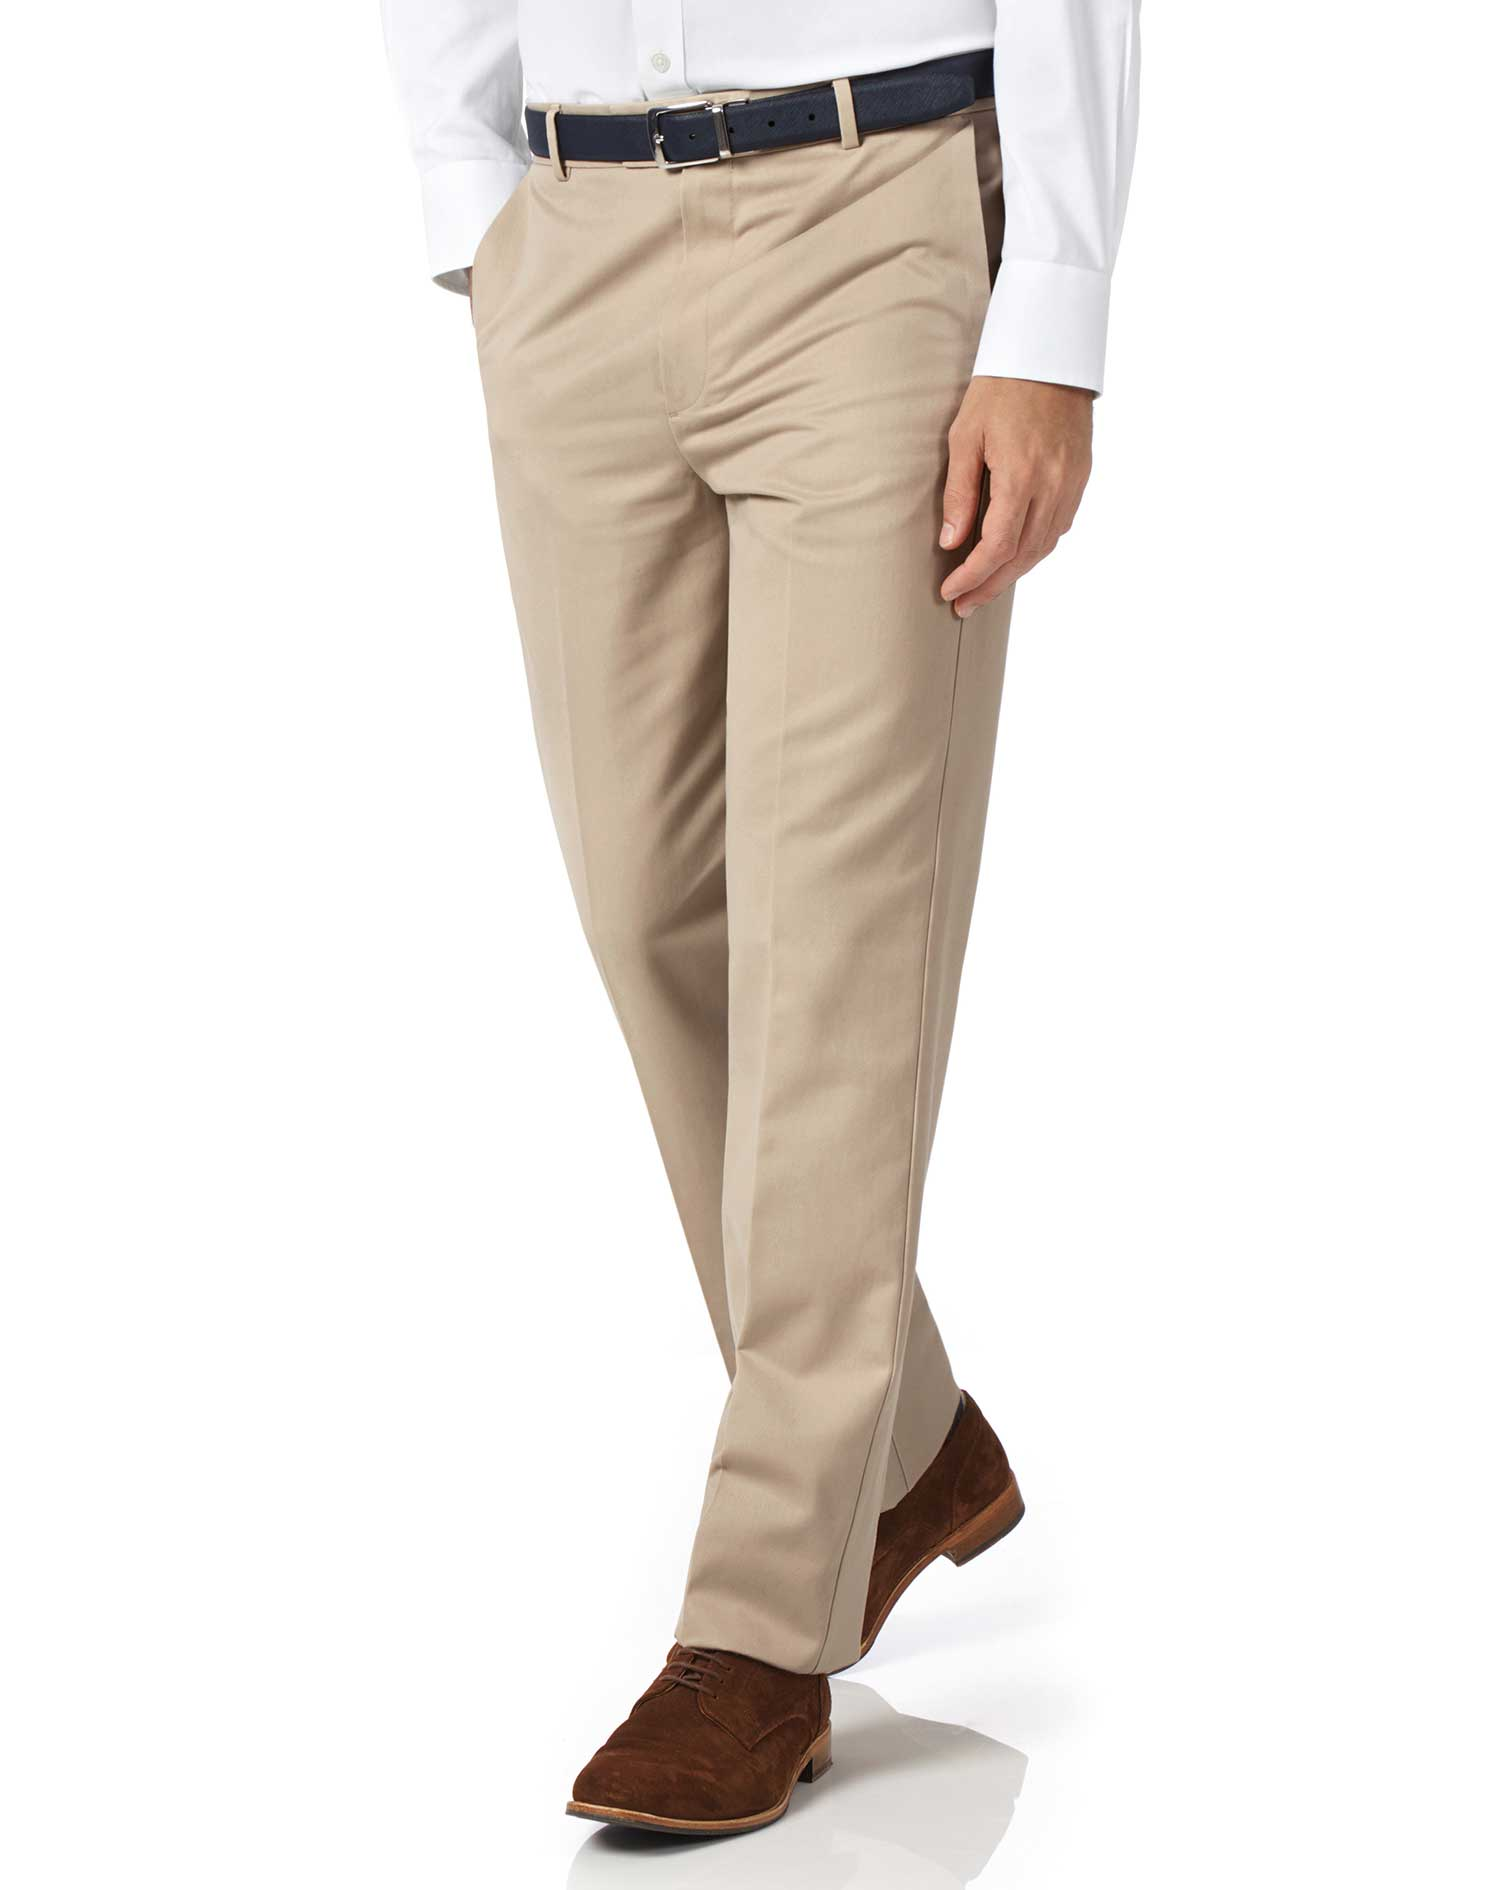 Stone Classic Fit Flat Front Non-Iron Cotton Chino Trousers Size W34 L30 by Charles Tyrwhitt